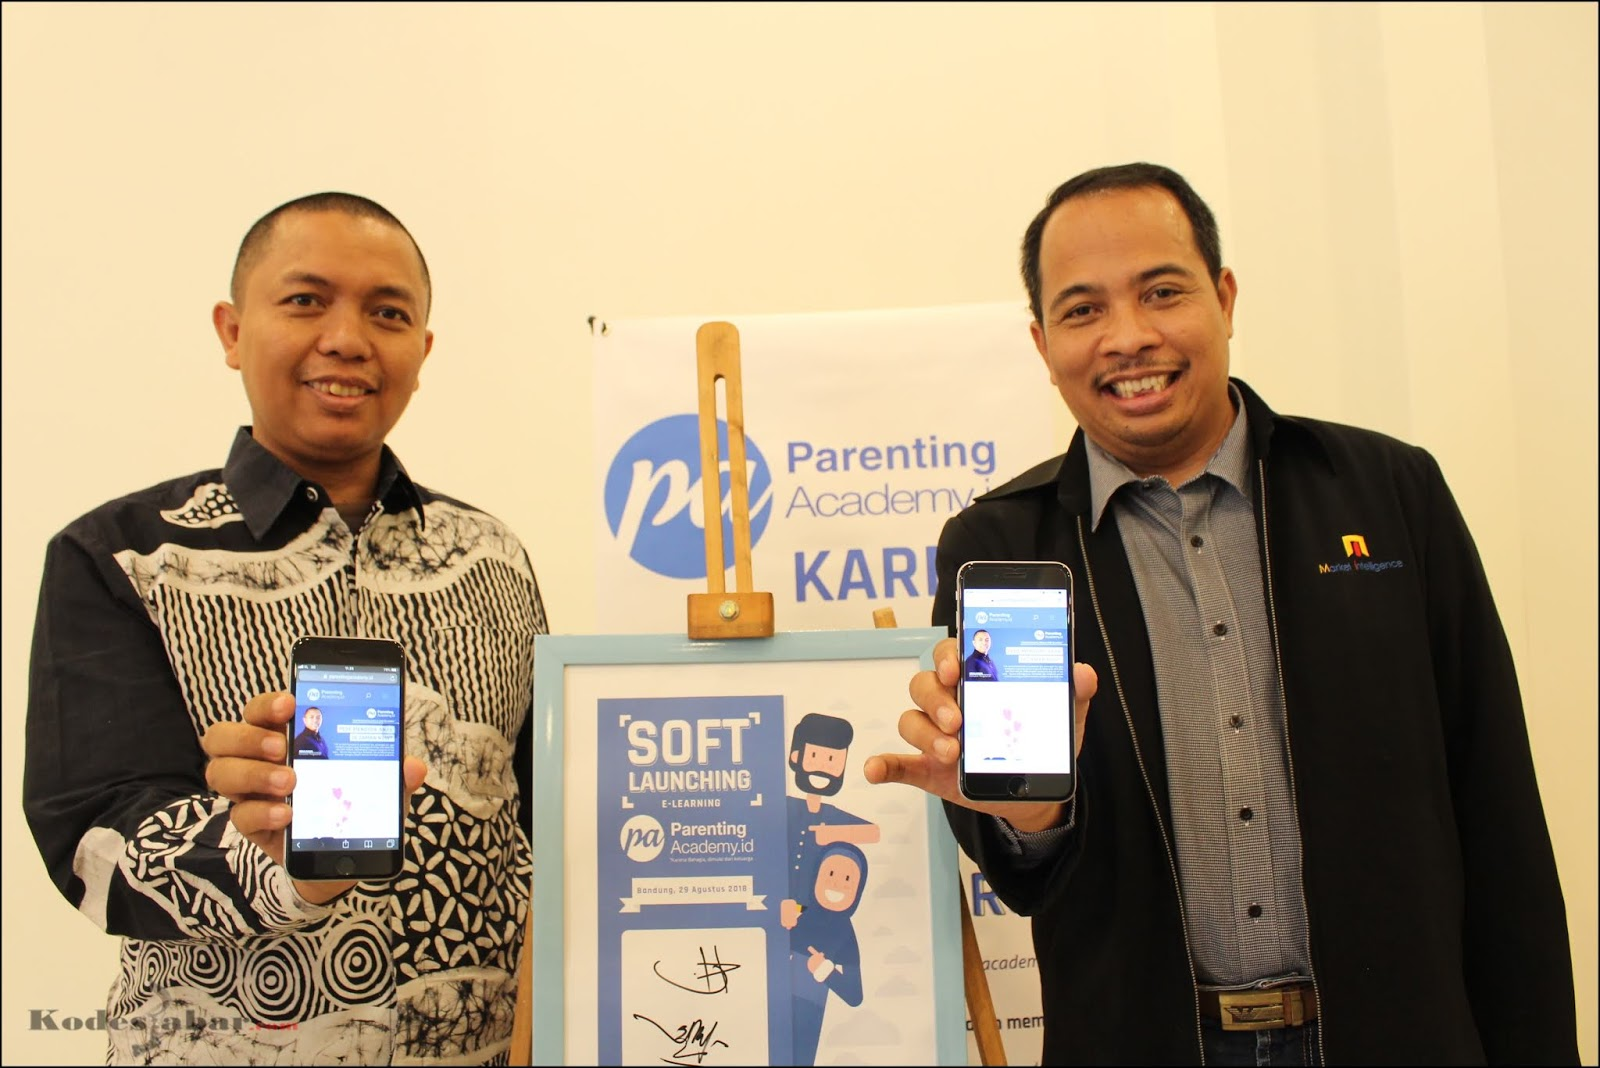 Launching E-Learning Parenting Academy